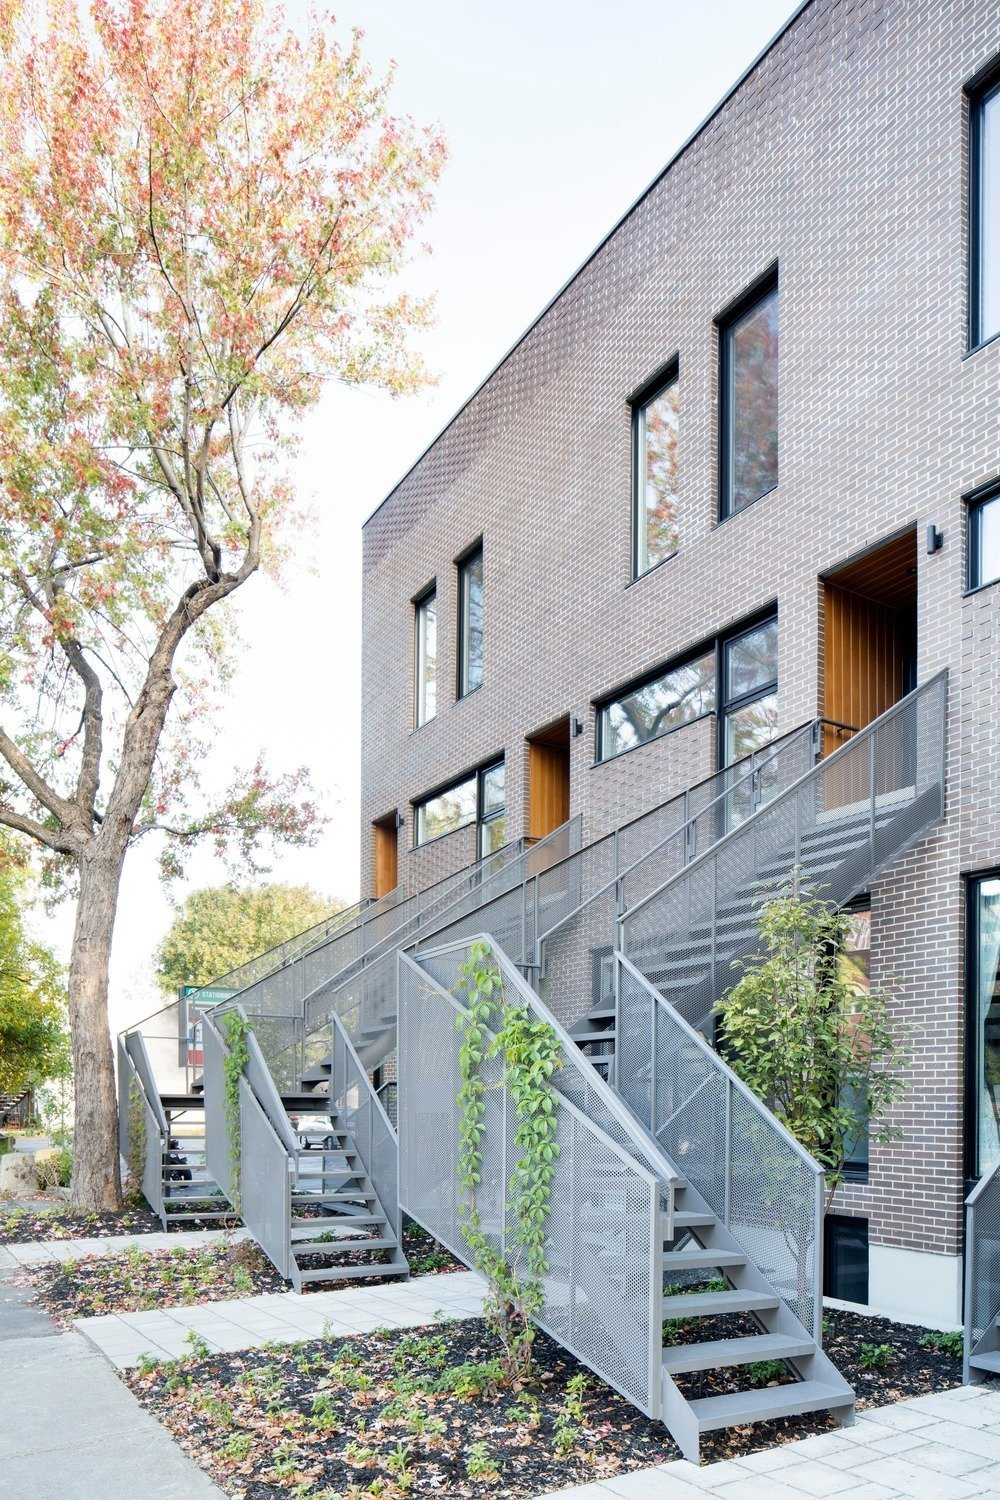 Exterior and Brick Siding Material Plants wrap around the perforated aluminum railings for a natural touch.  Best Photos from Meet Your New Neighbors: Minimal Town Houses with Character